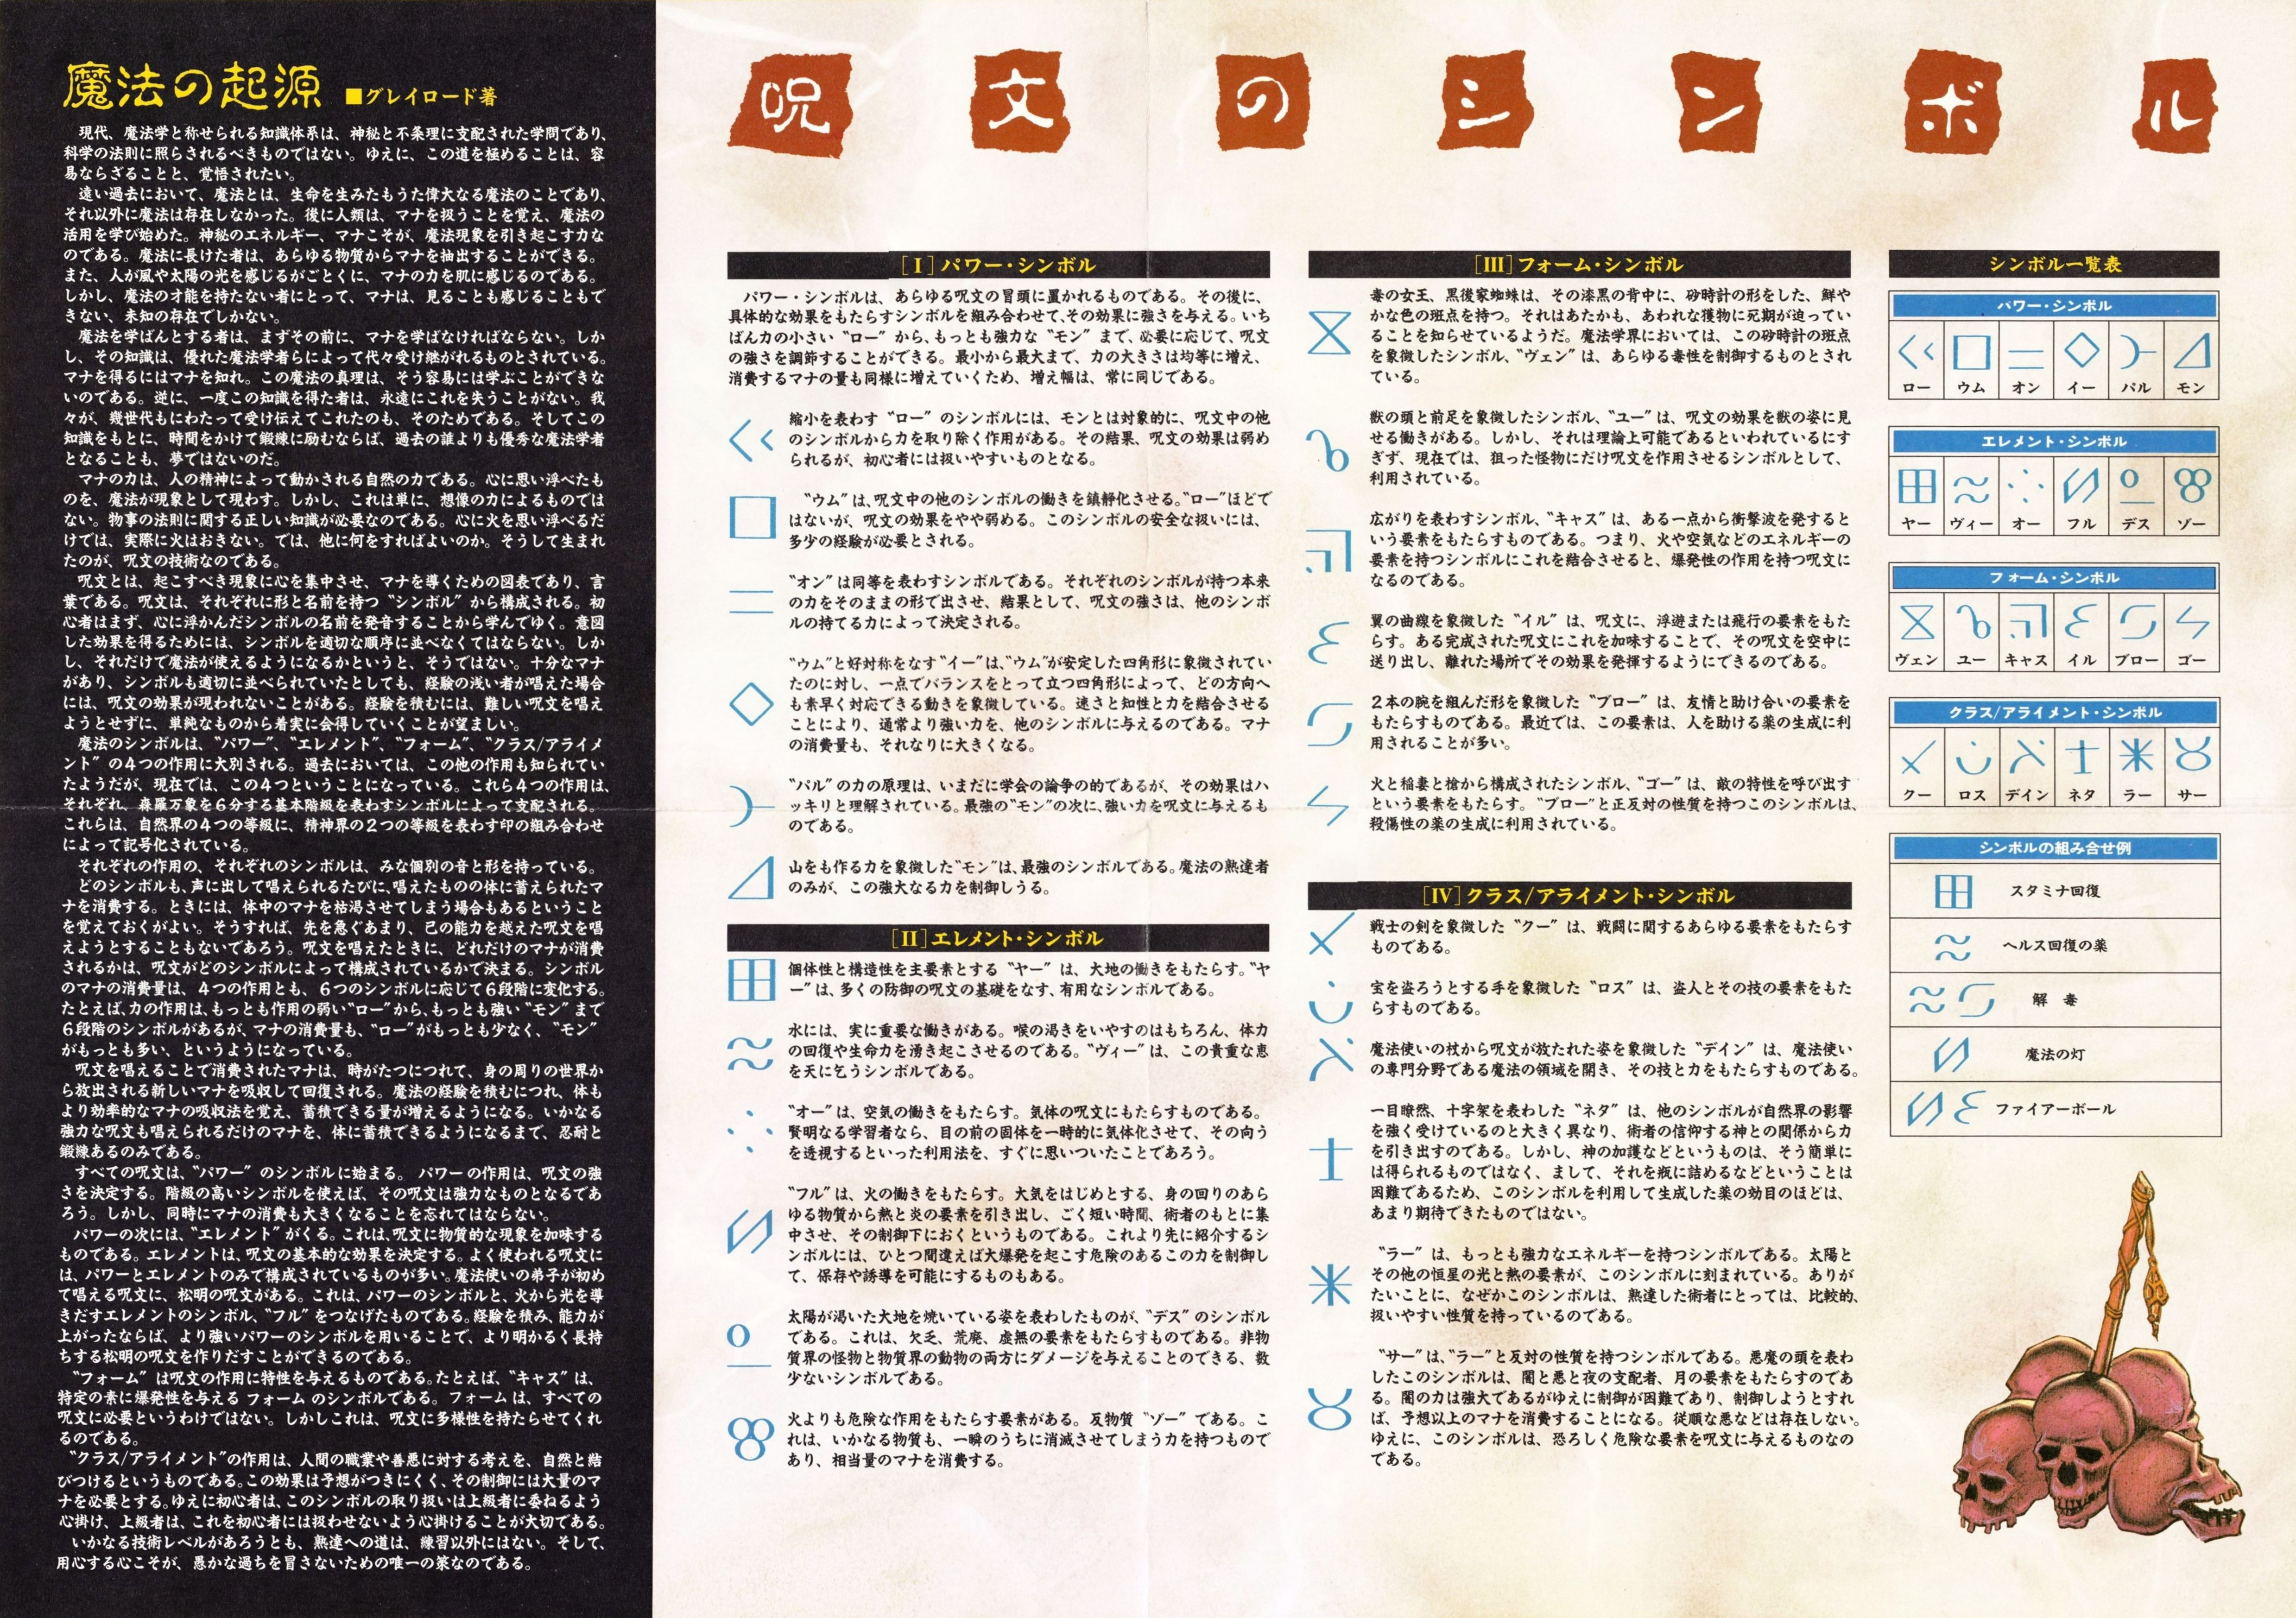 Game - Dungeon Master - JP - PC-9801 - 5.25-inch - Information Card - Back - Scan